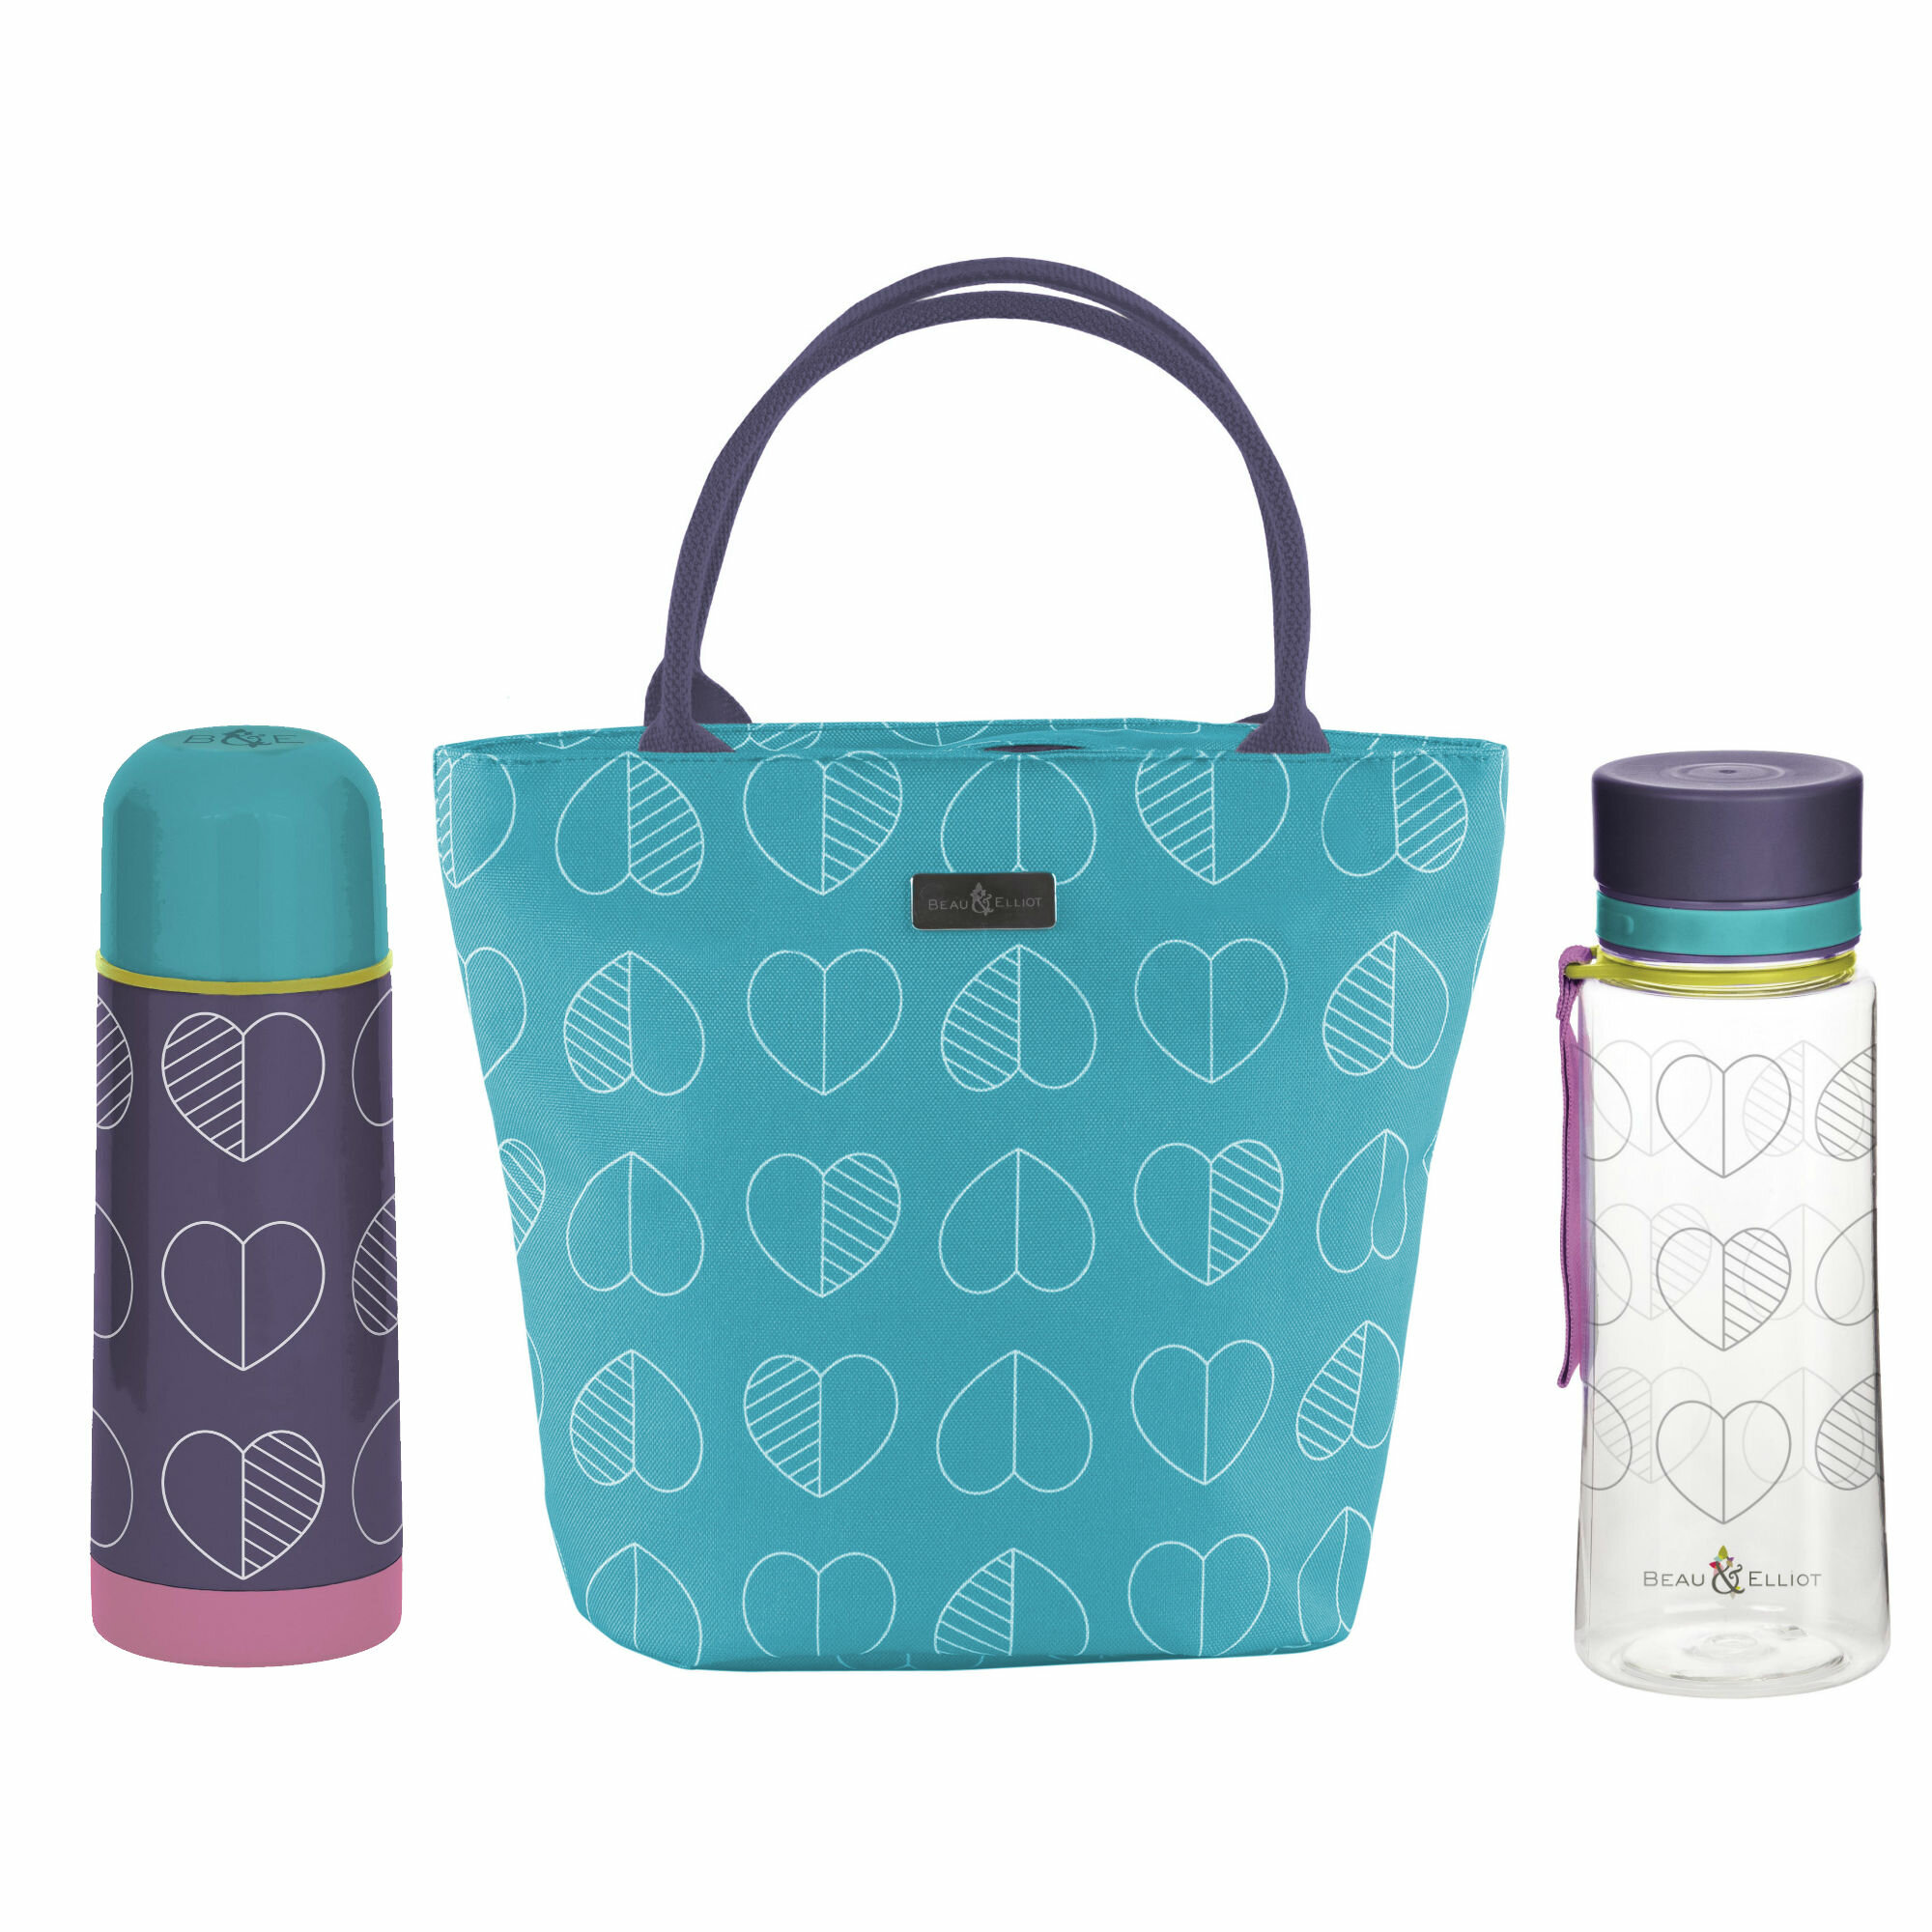 87c8eac0ab3c Outline Insulated Picnic Tote Bag Set